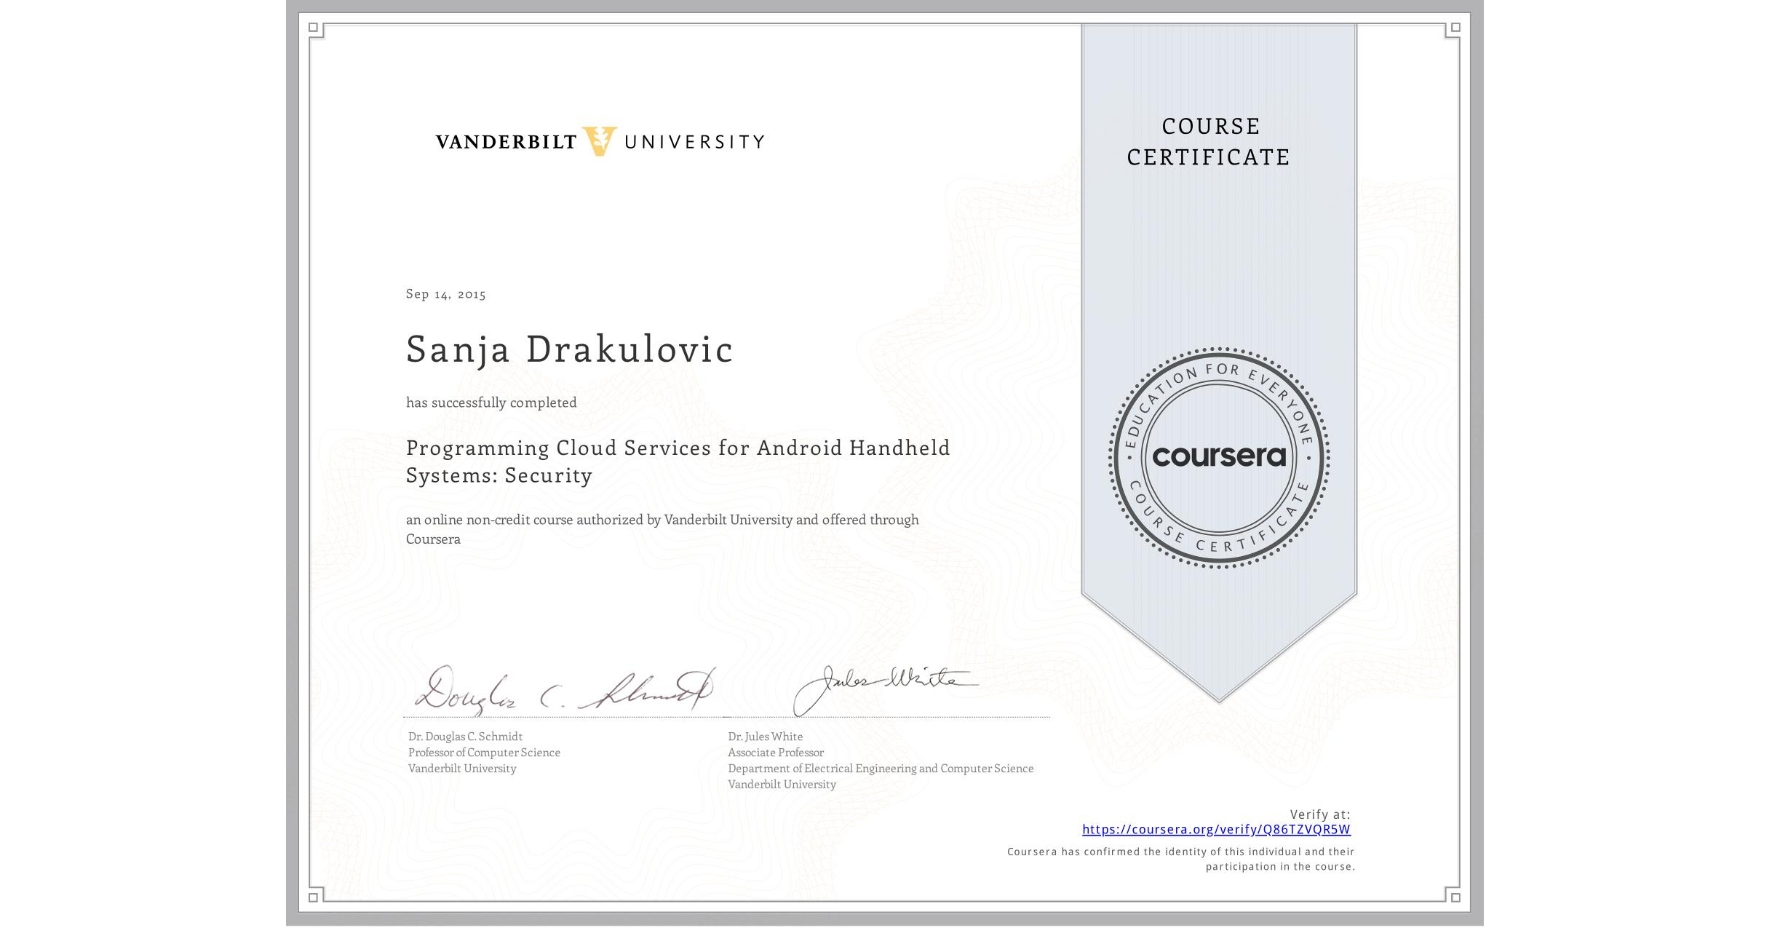 View certificate for Sanja Drakulovic, Programming Cloud Services for Android Handheld Systems: Security, an online non-credit course authorized by Vanderbilt University and offered through Coursera